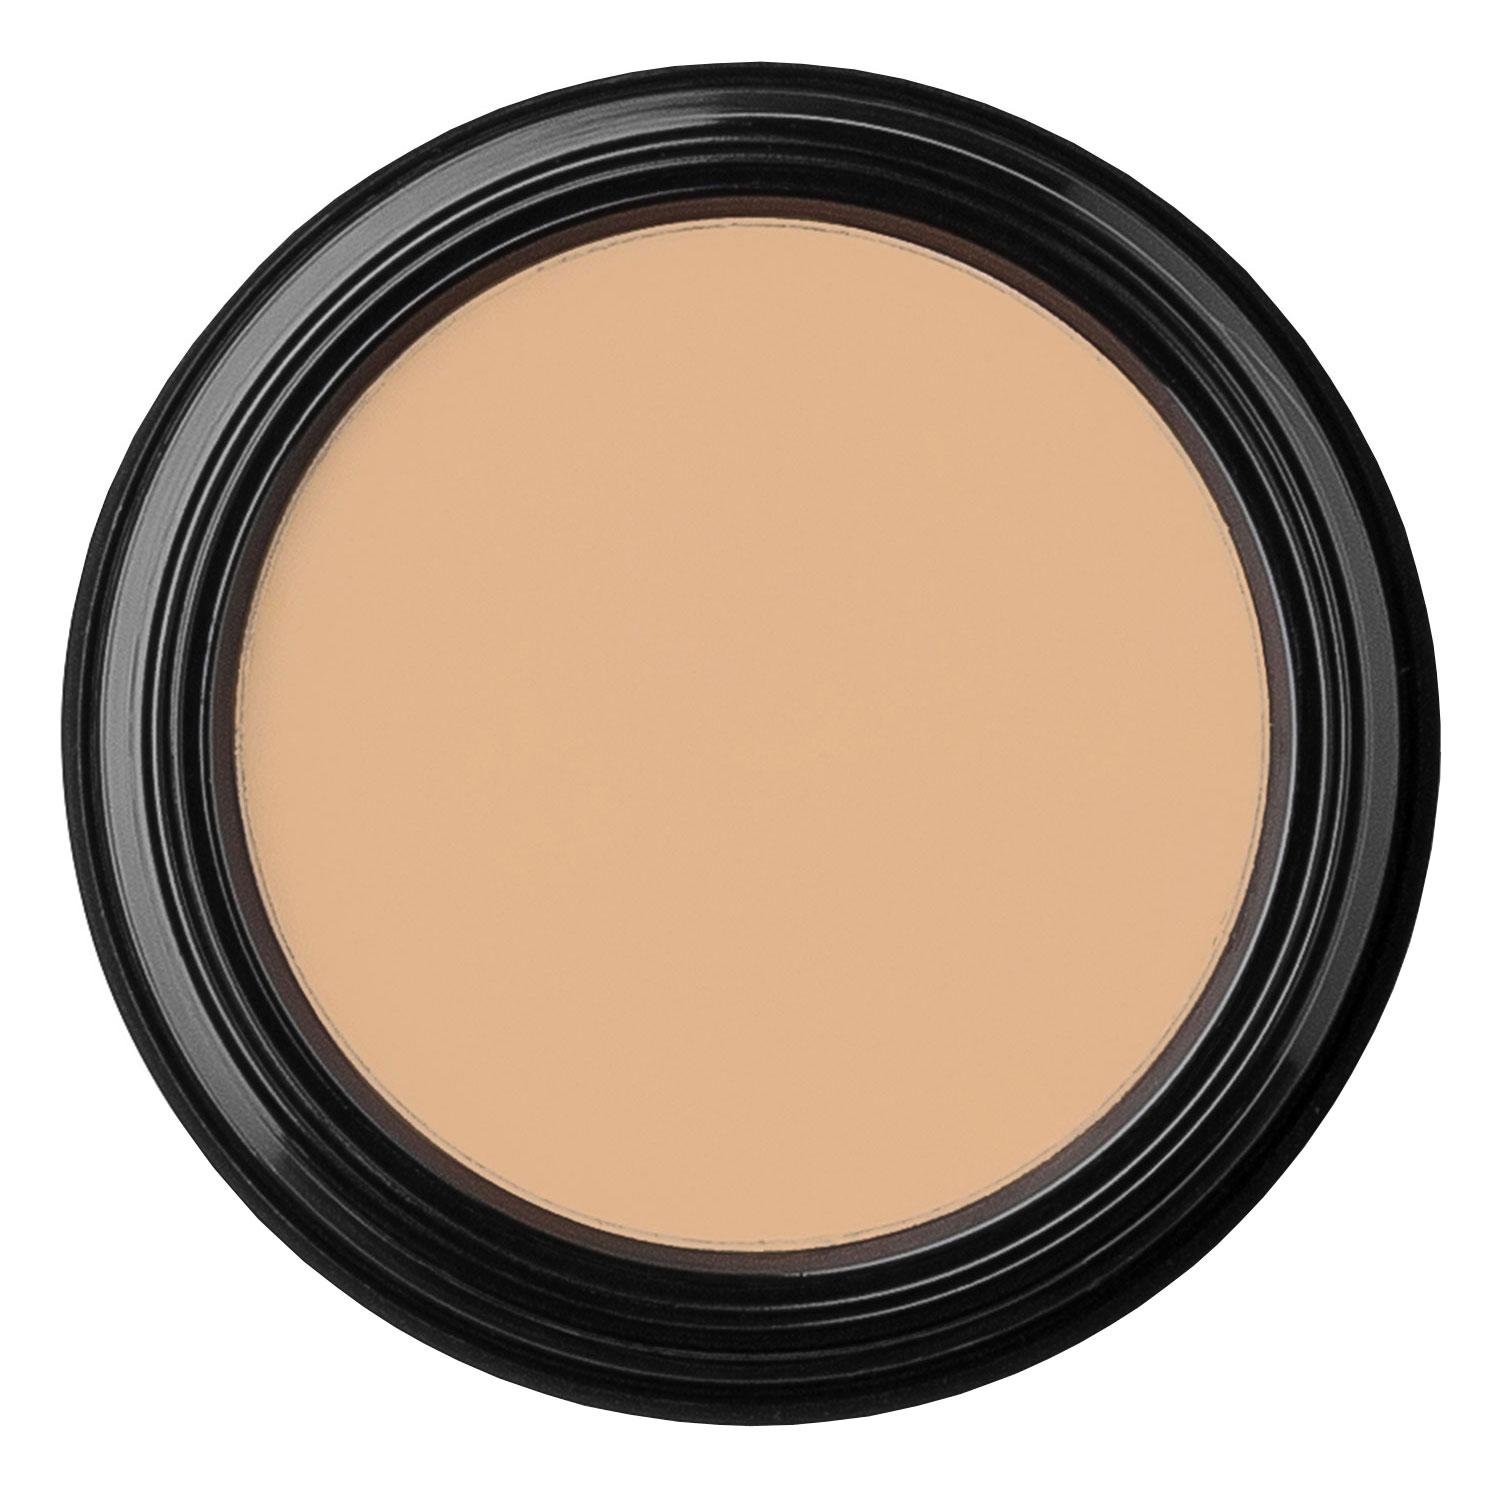 glo Camouflage - Oil free natural - 3.1g